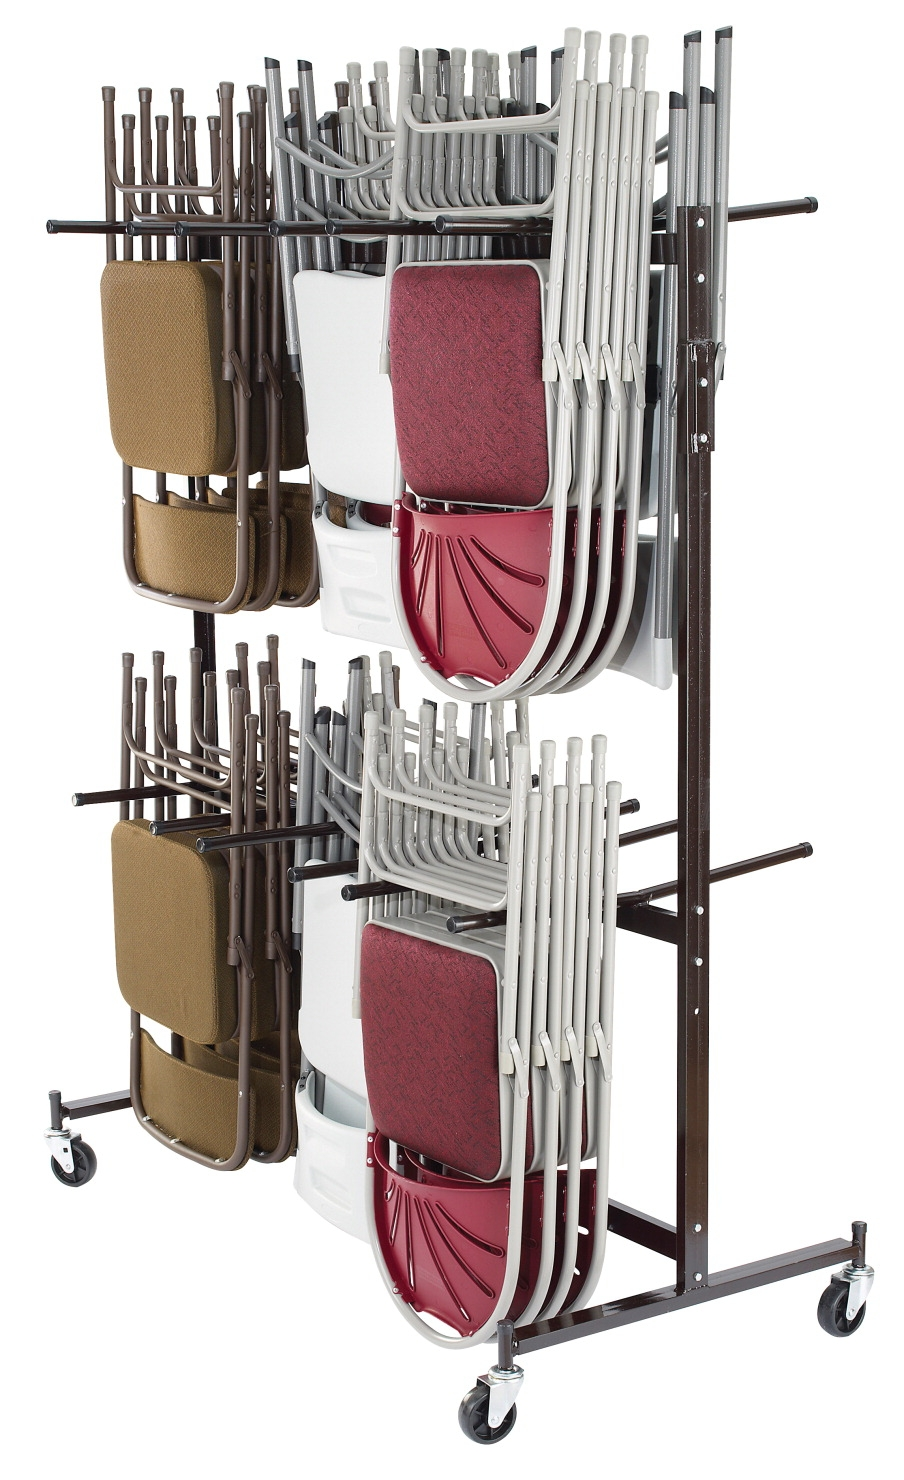 Nps Extender Bar Kit; Dark Brown; For Use With 84 In Folding Hanging Chair Caddy - 679328 - Air Sports Hang Gliding Powered Hang Glider 679328